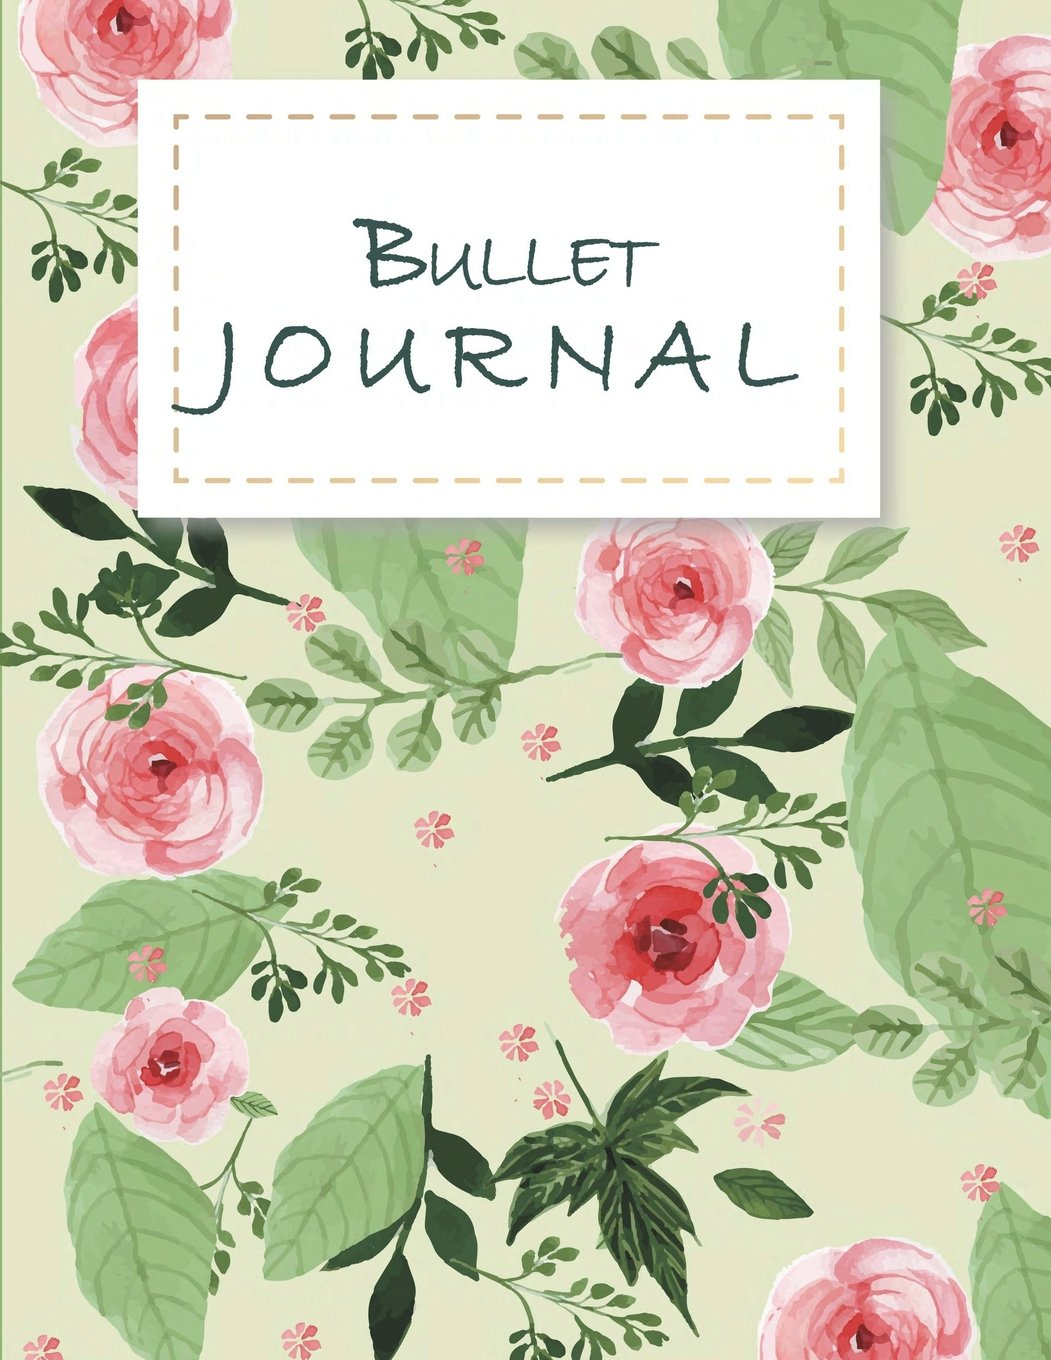 "Bullet Journal: Daily Notebook to Write in Bullet Dots & Dot Grid Paper 120 Pages 8.5"" x 11"". PDF"